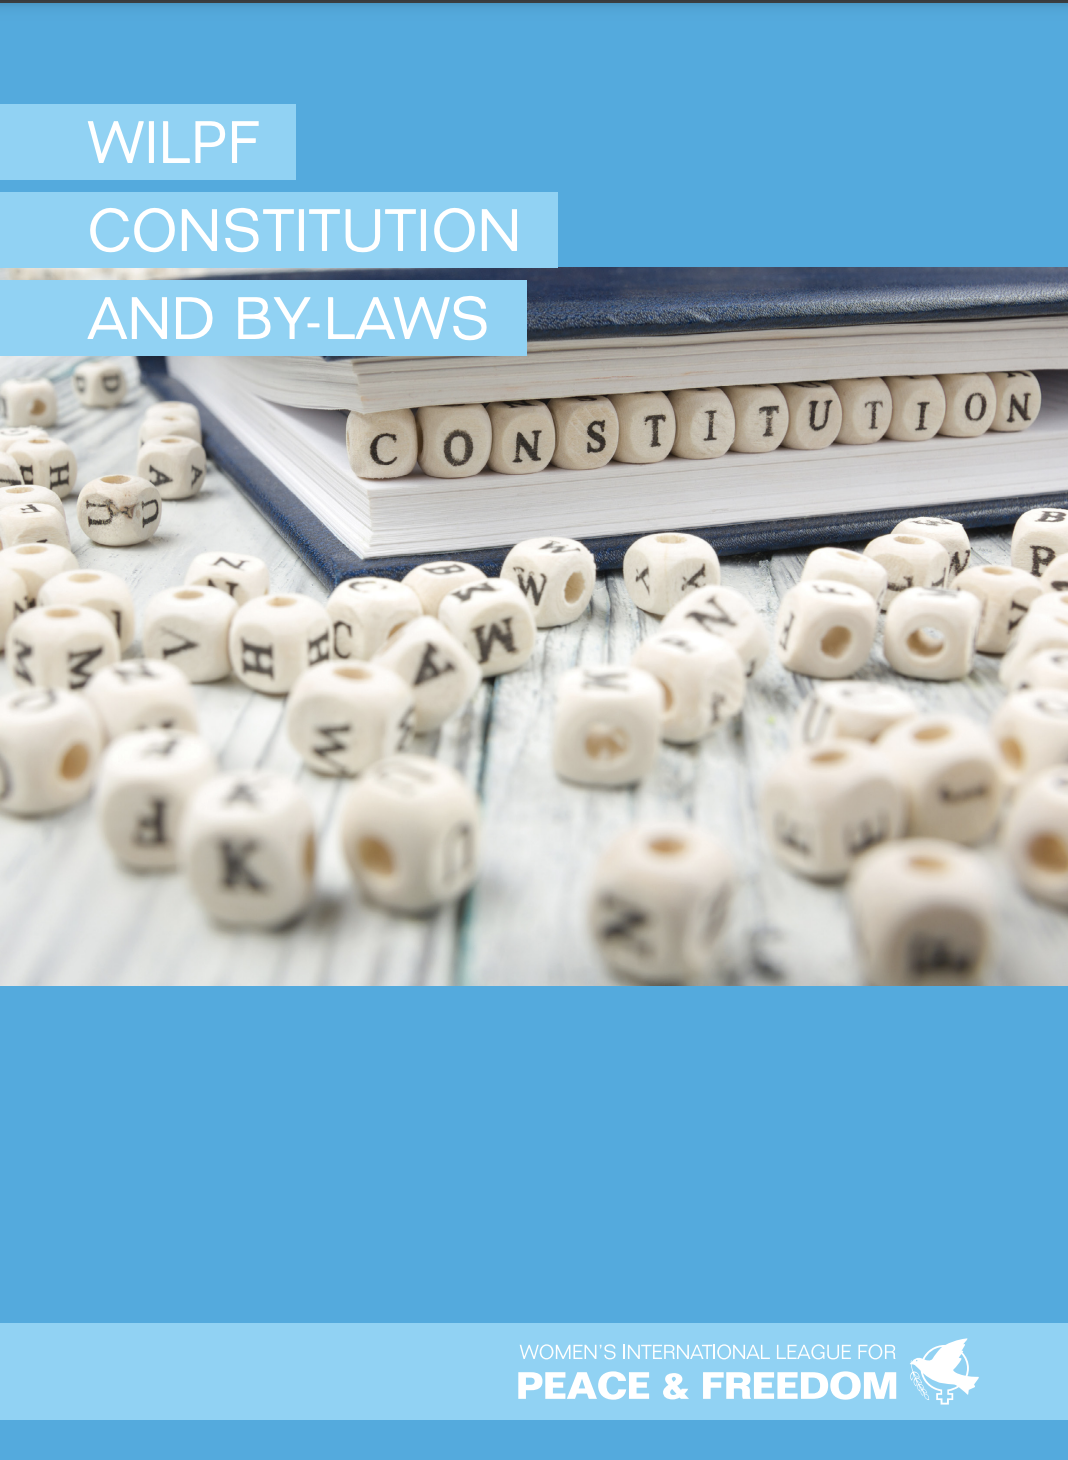 WILPF's constitution and by-laws